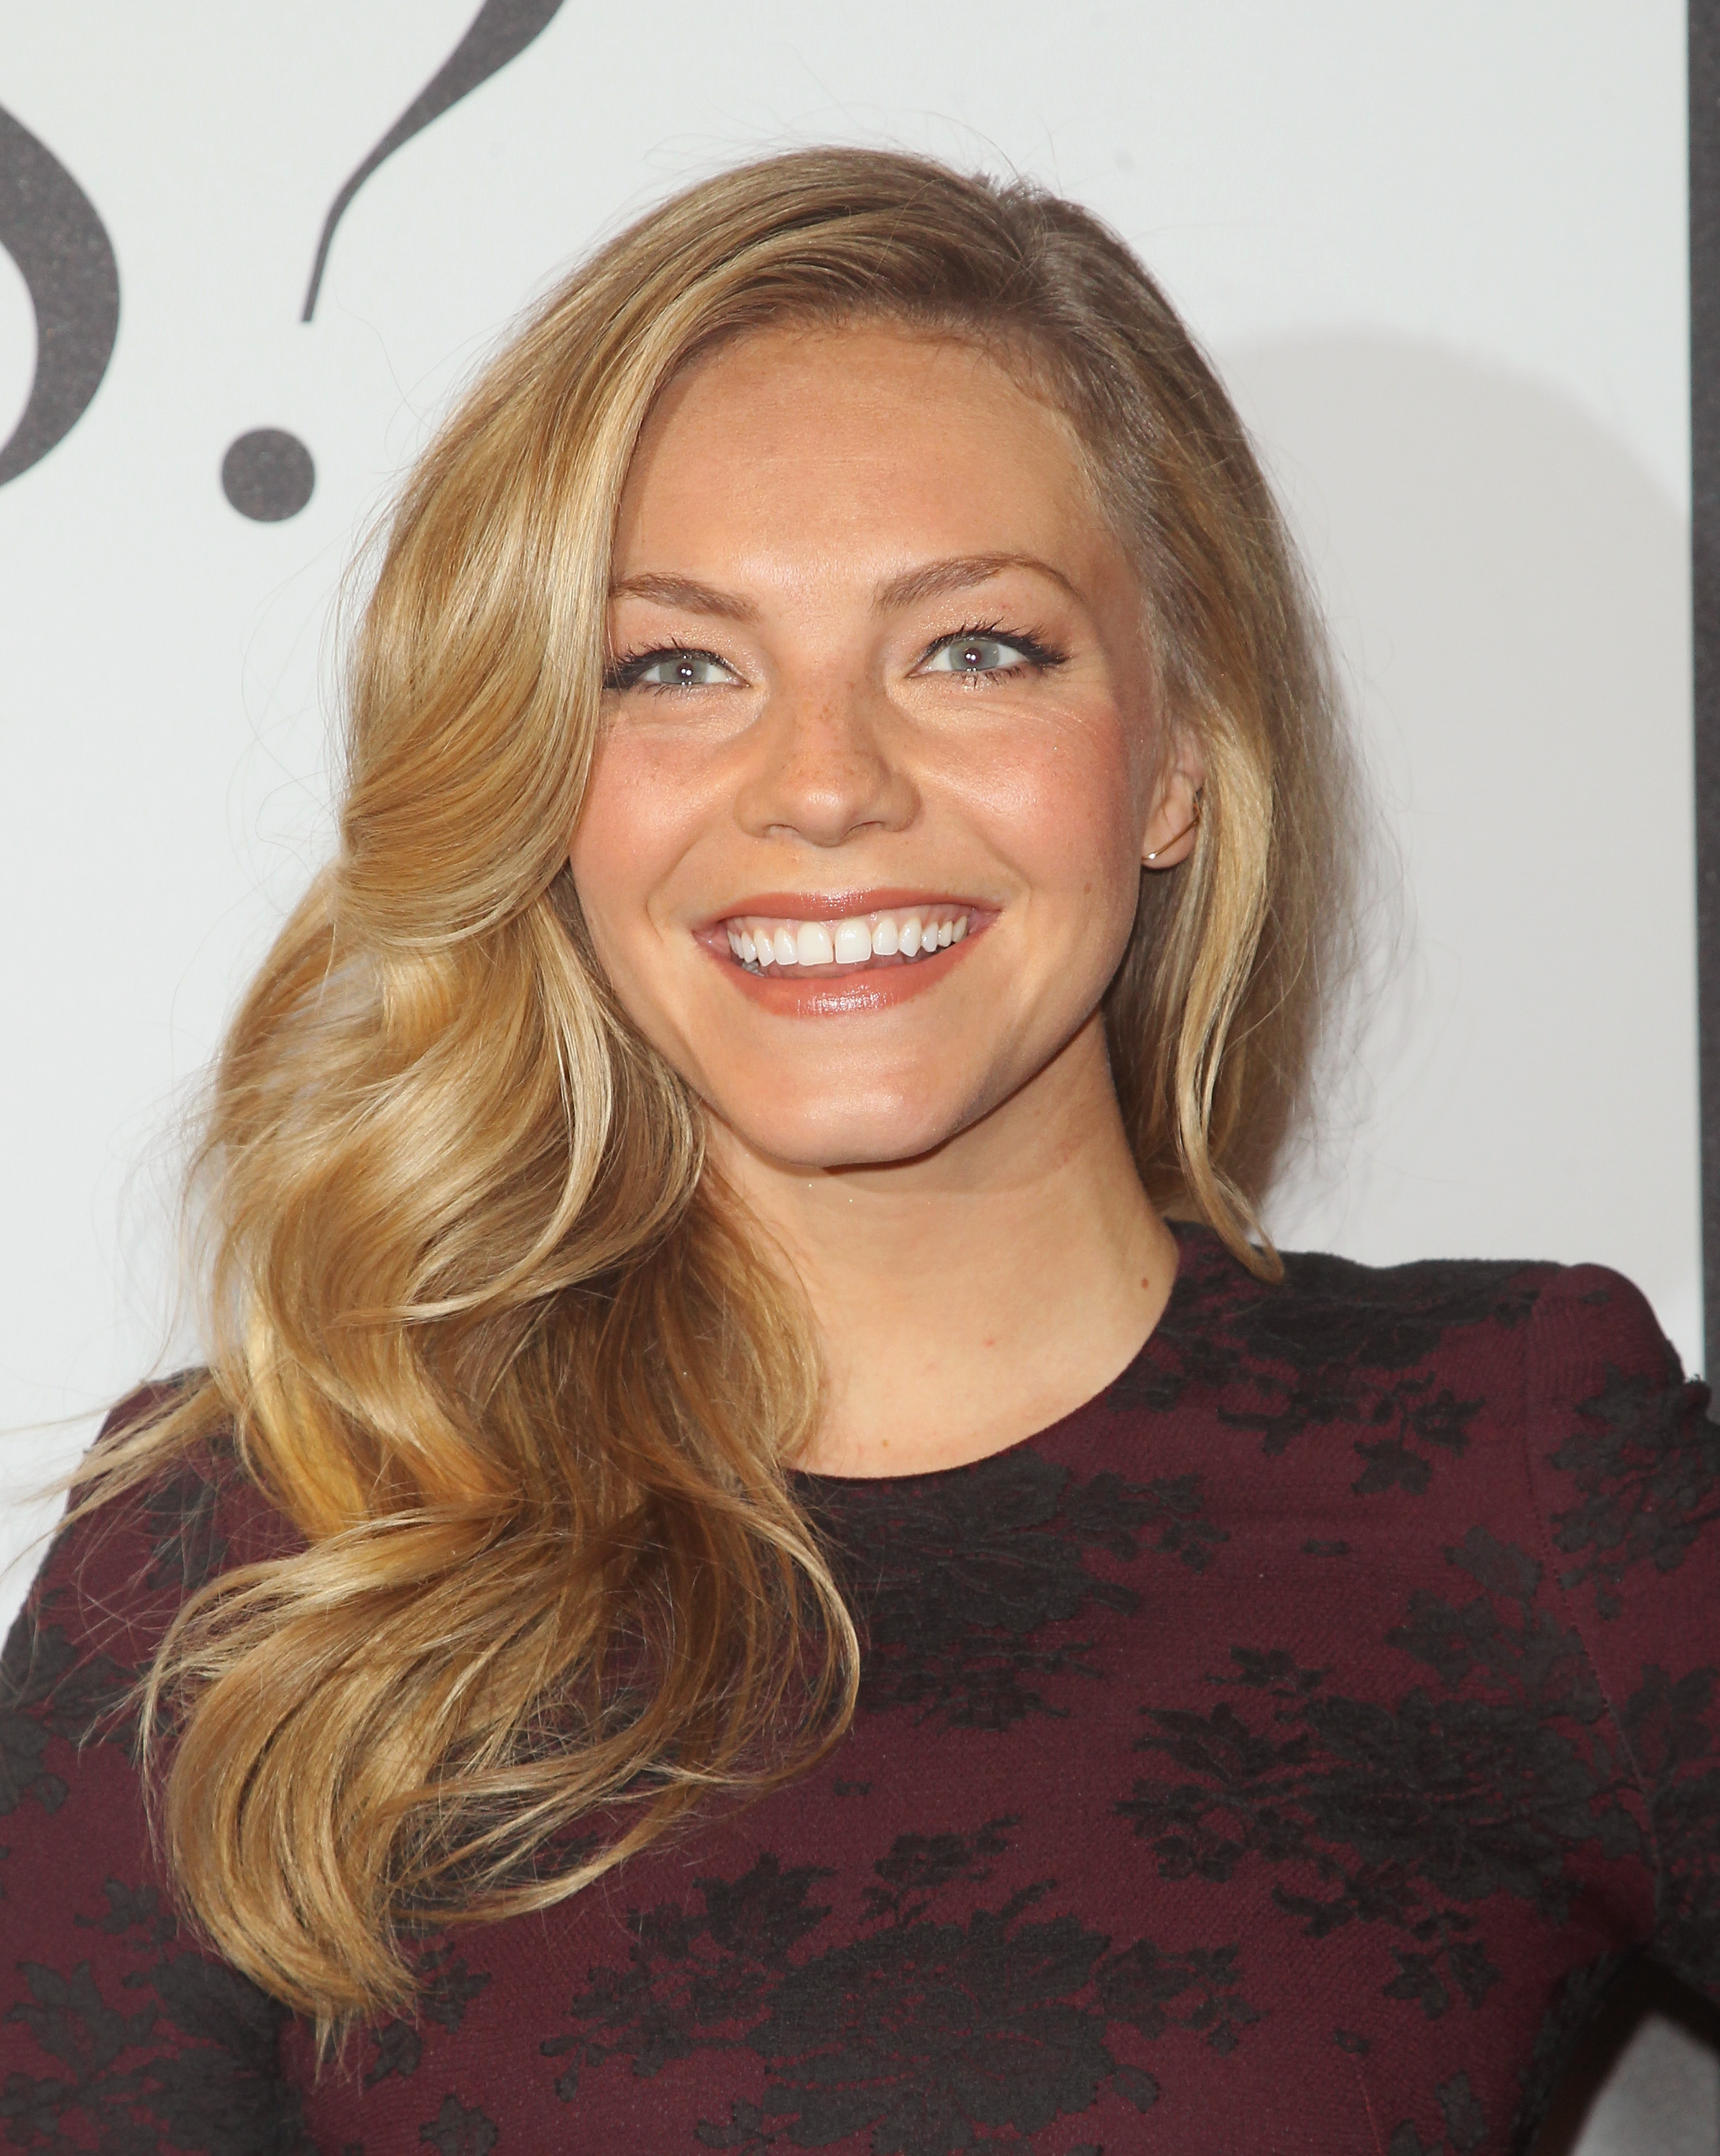 Actress Eloise Mumford attends the  Fifty Shades Of Grey  New York fan first screening at Ziegfeld Theatre on February 6, 2015 in New York City.